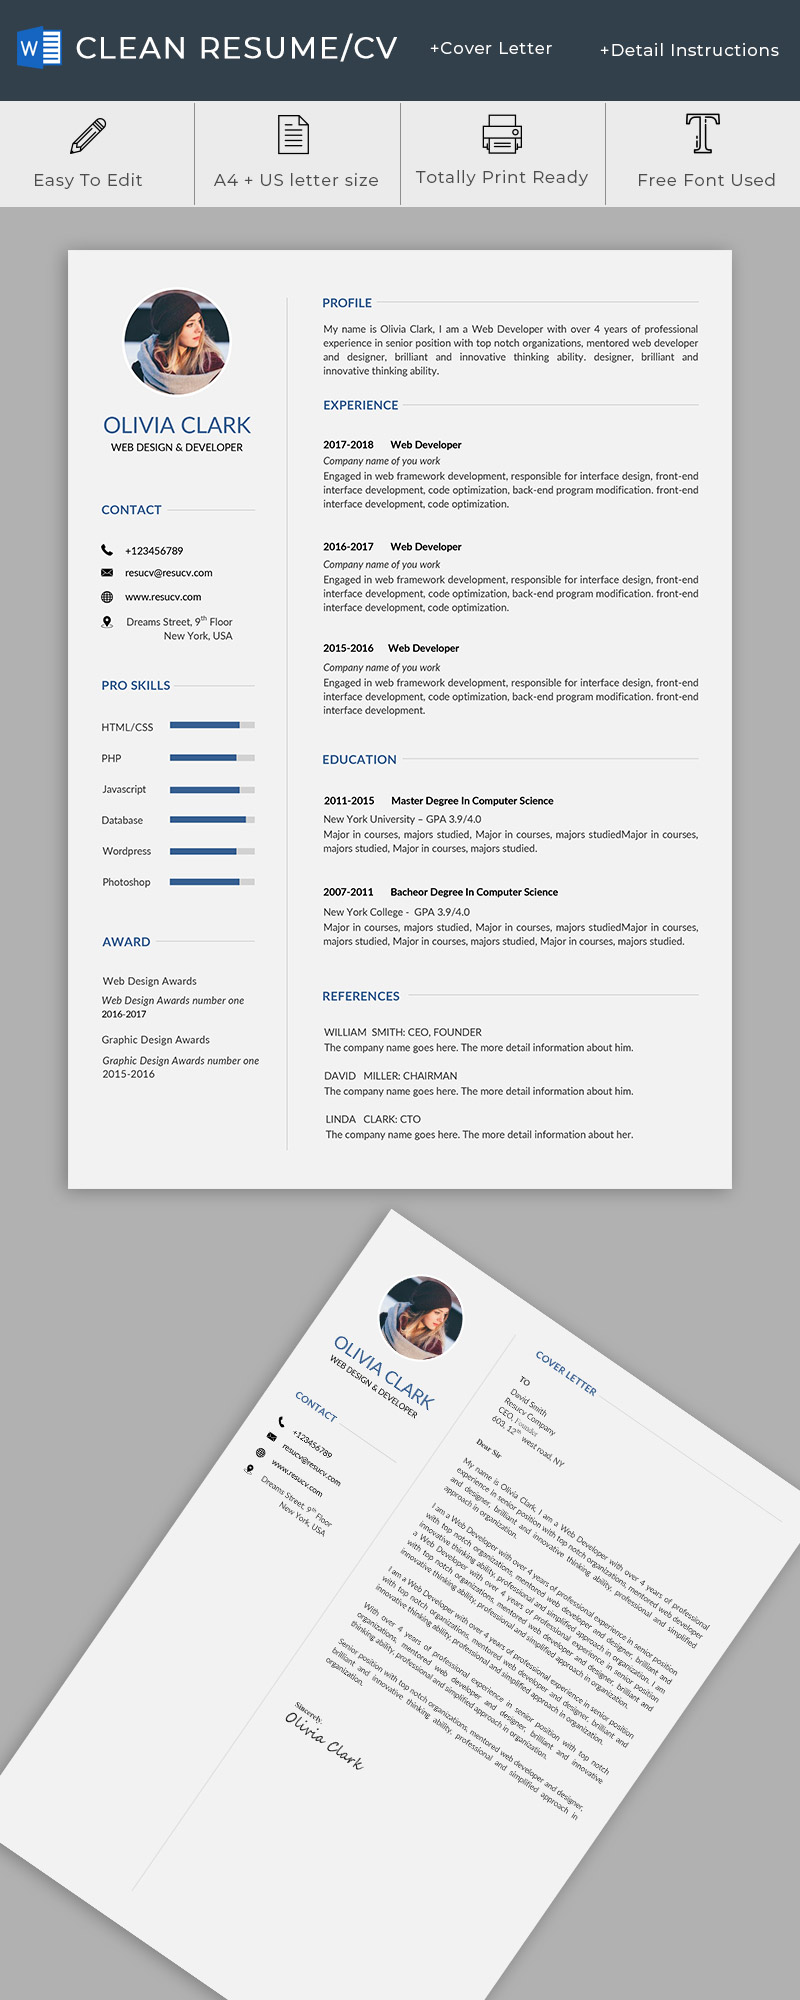 Clean and professional resume/cv template